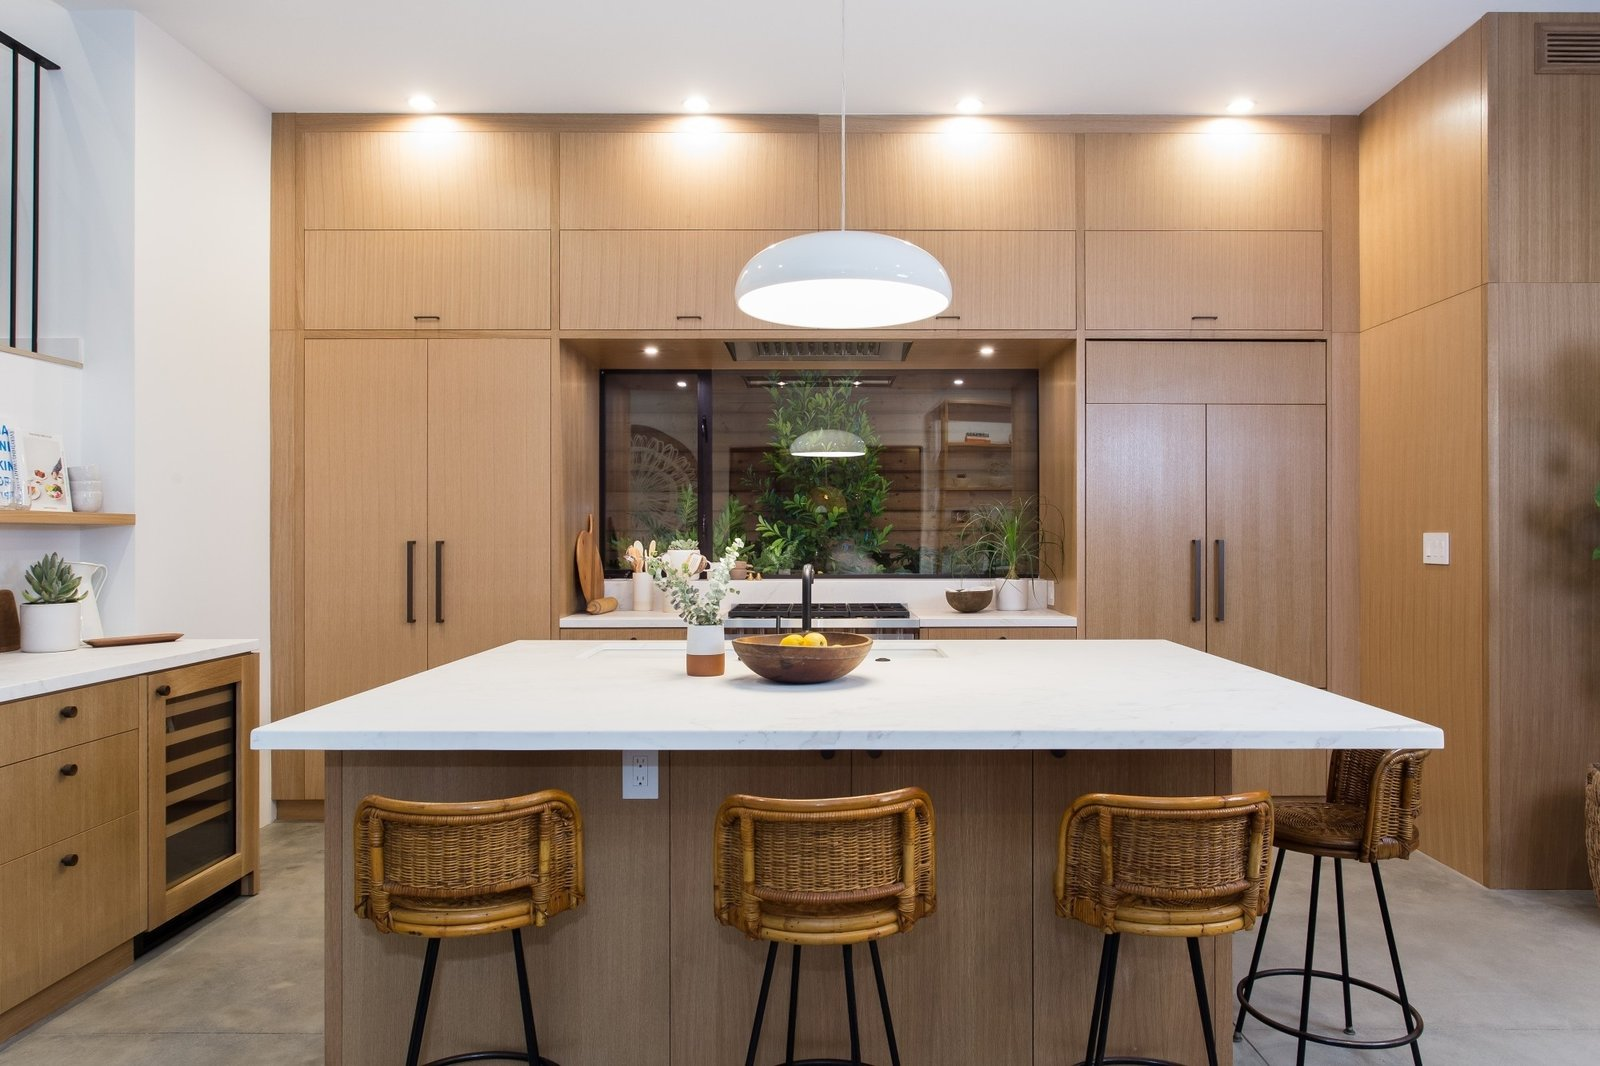 Tagged: Kitchen, Wood Cabinet, Concrete Floor, Engineered Quartz Counter, Pendant Lighting, and Recessed Lighting.  Love Street Residence by Halton Pardee + Partners